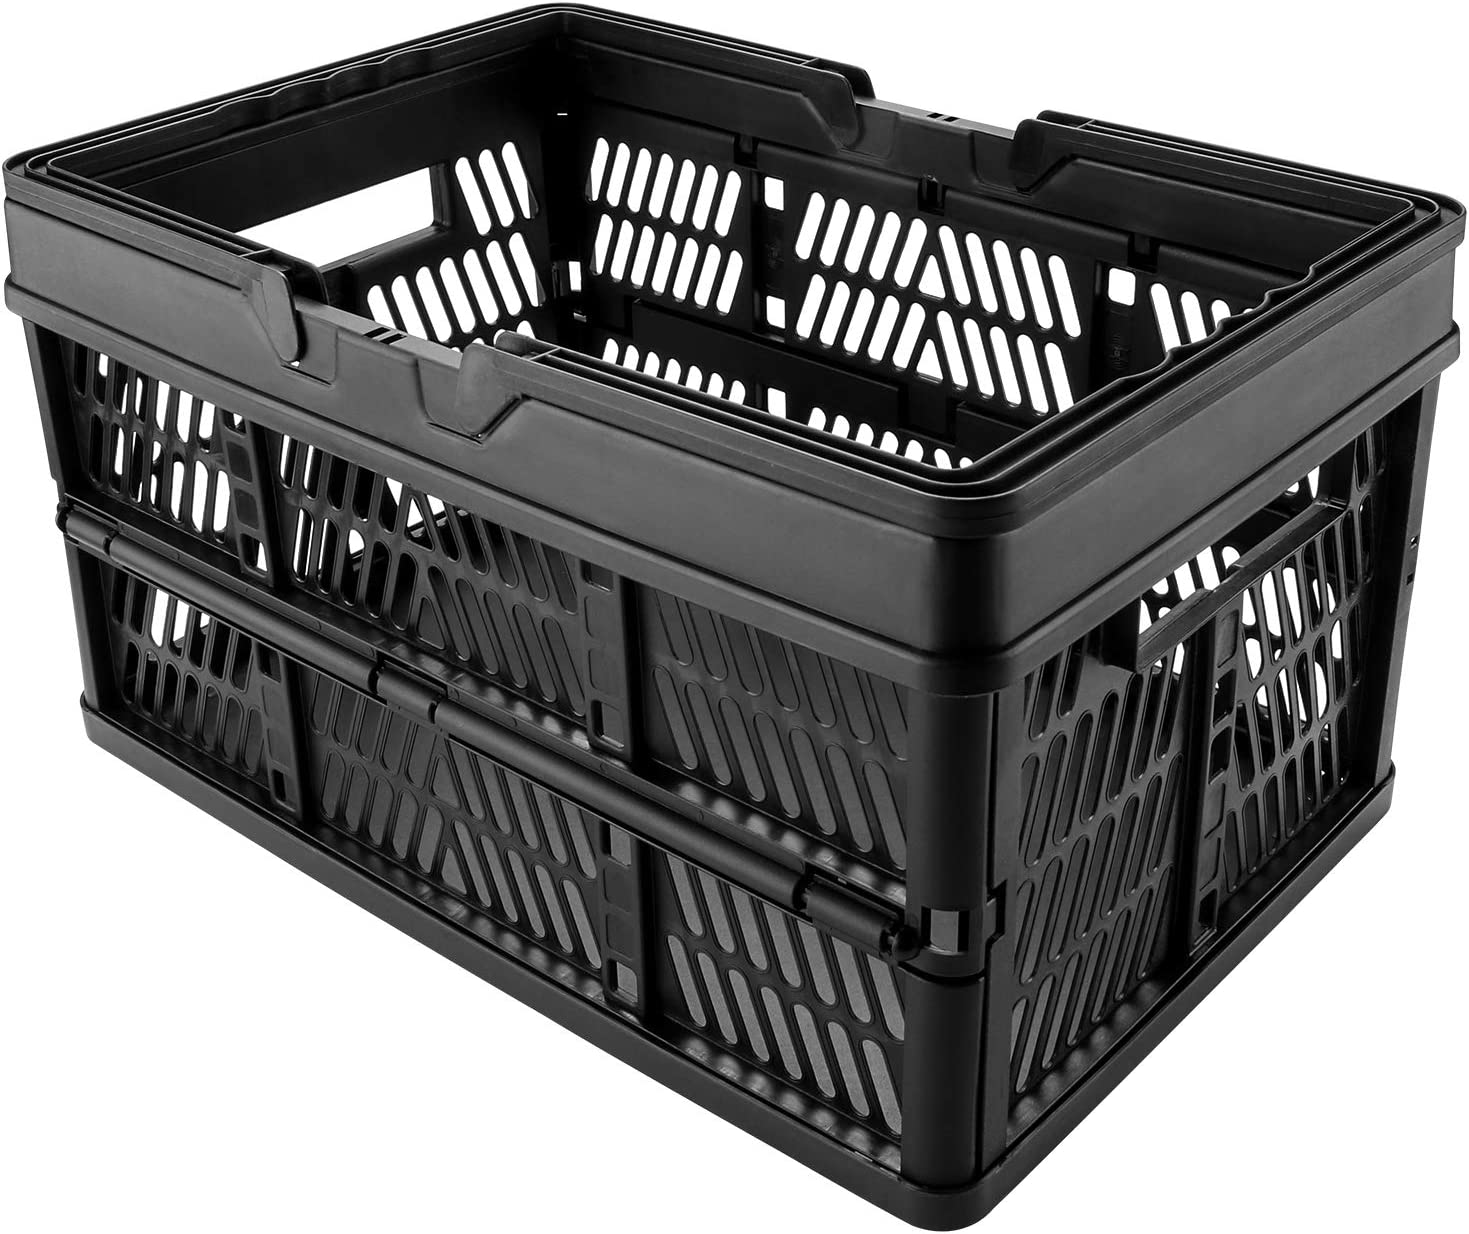 DEAOTEK 19 Liter Folding Storage Crate - Collapsible Shopping Basket with Handles Stackable Storage Bins Plastic Foldable Container, for Milk Toys Food Clothes Tools Files, Pack of 1